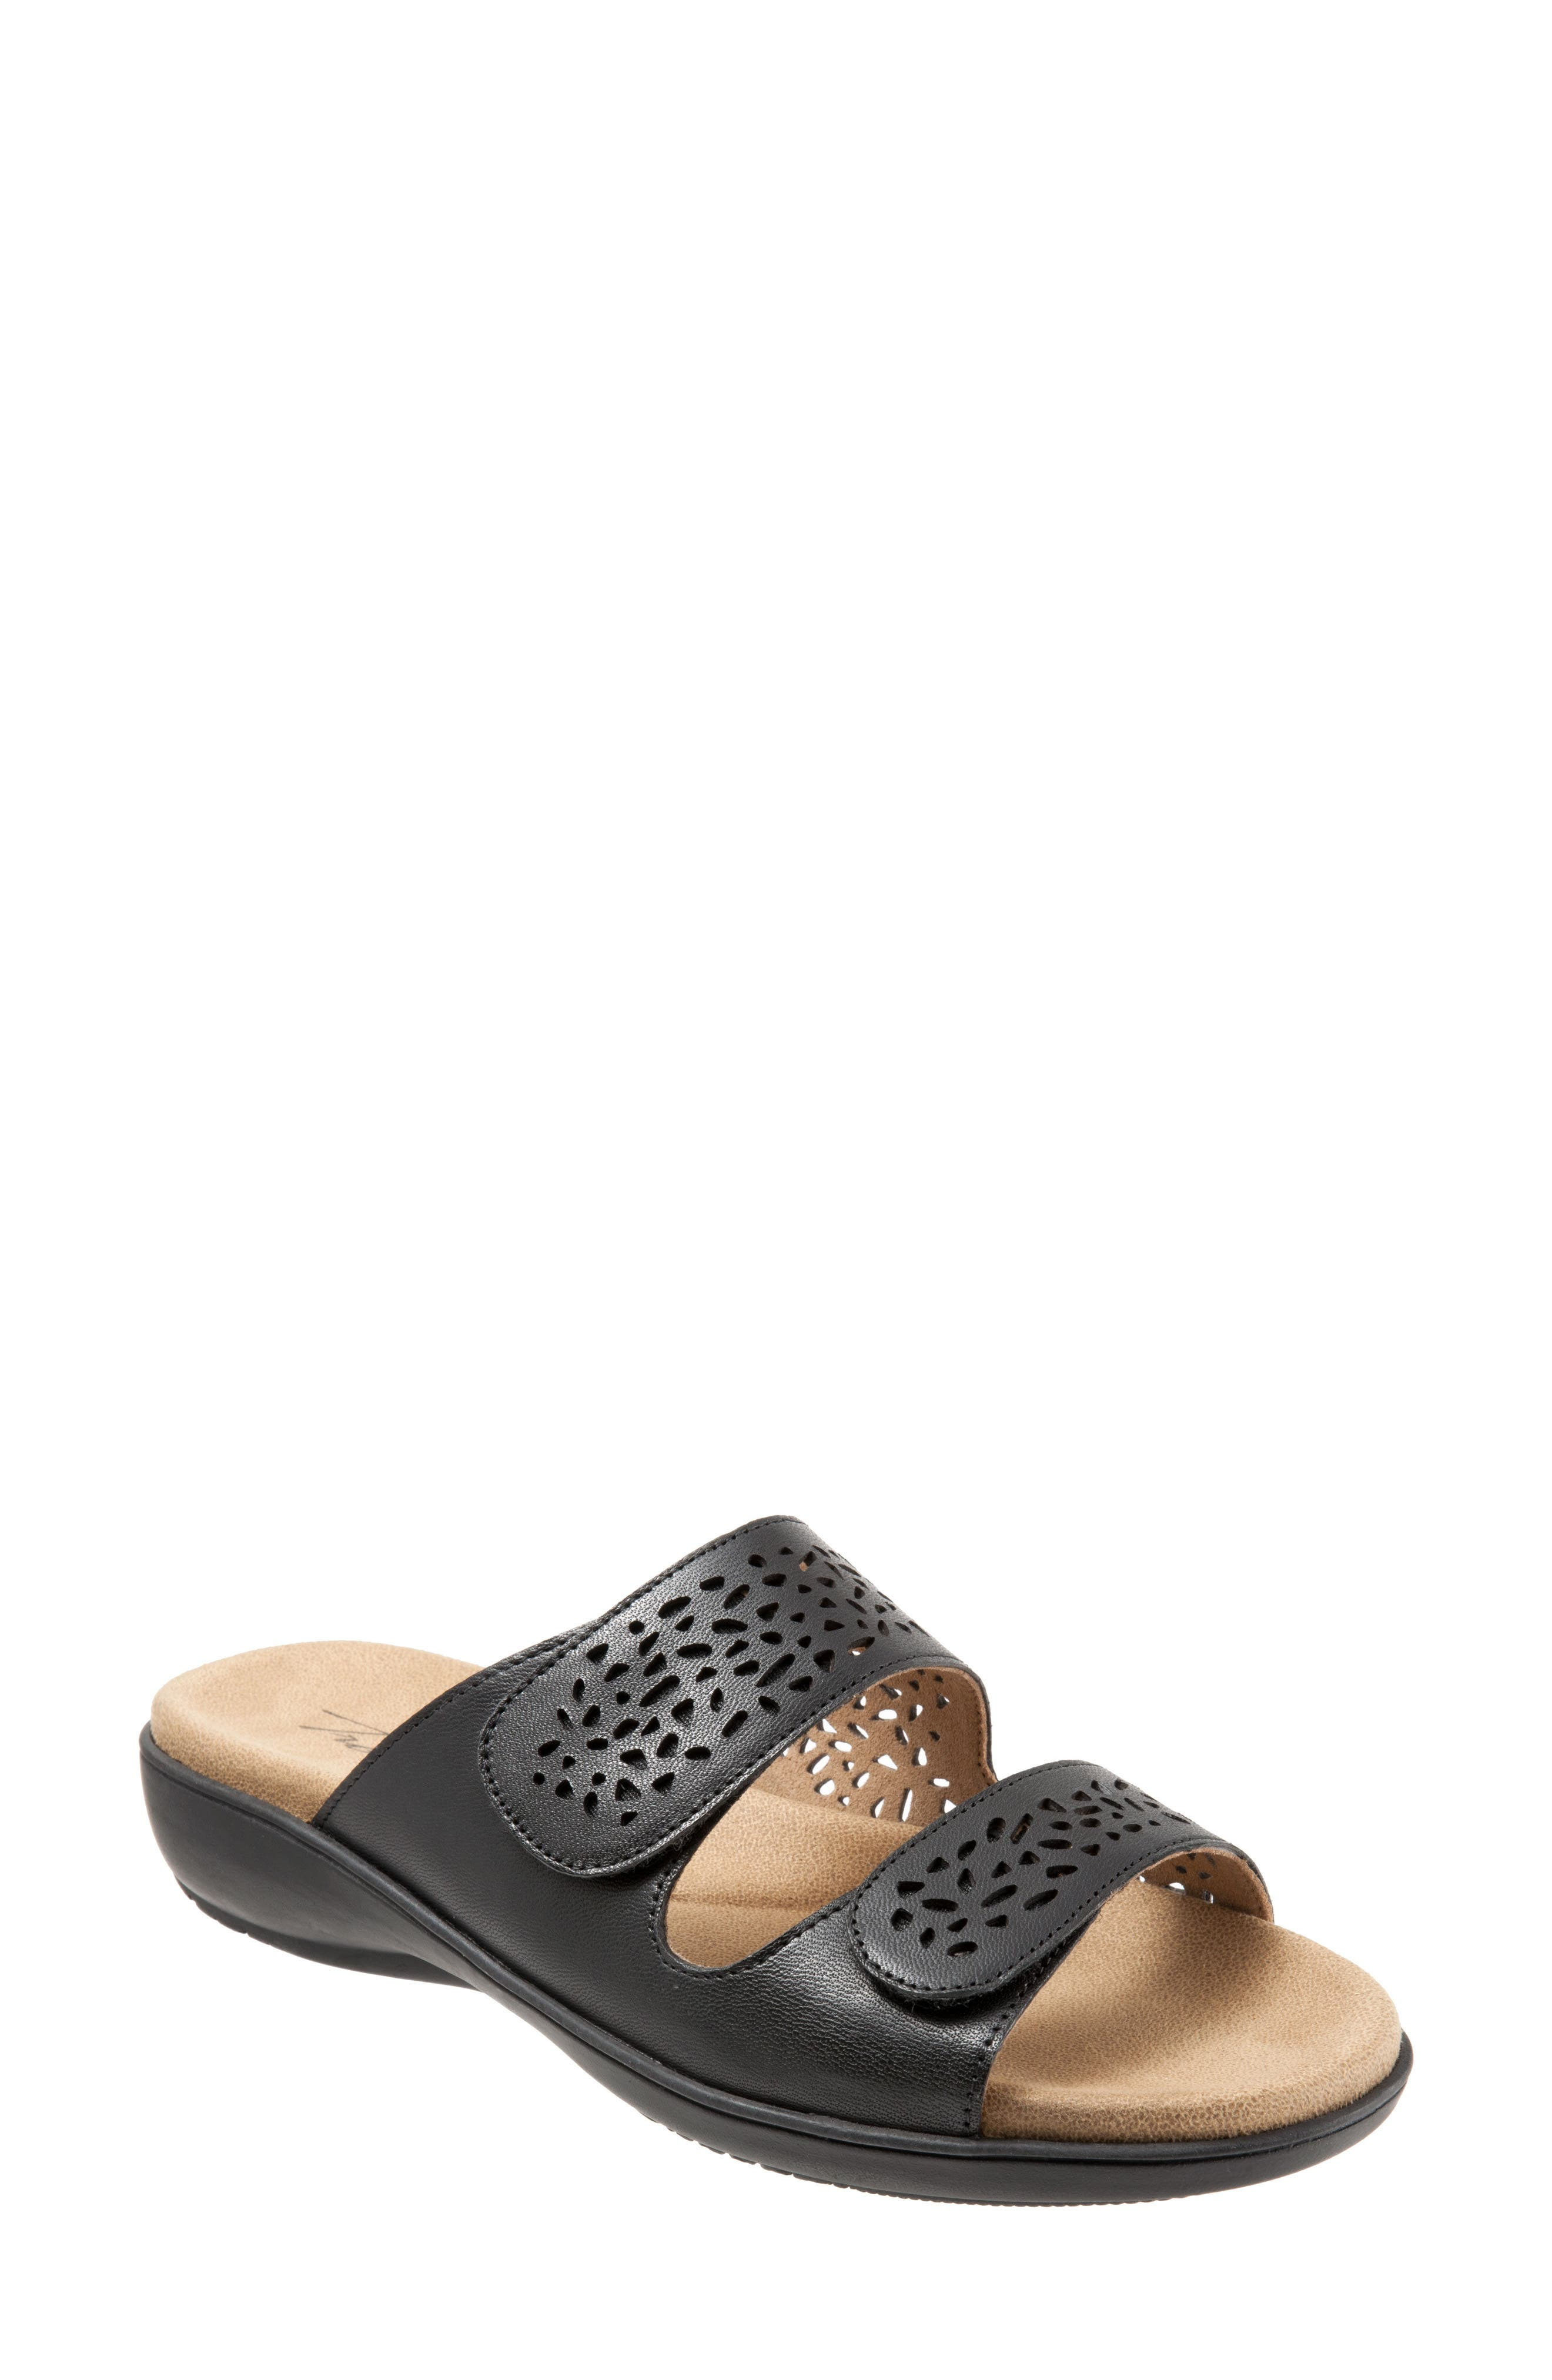 Tokie Sandal,                             Main thumbnail 1, color,                             BLACK LEATHER